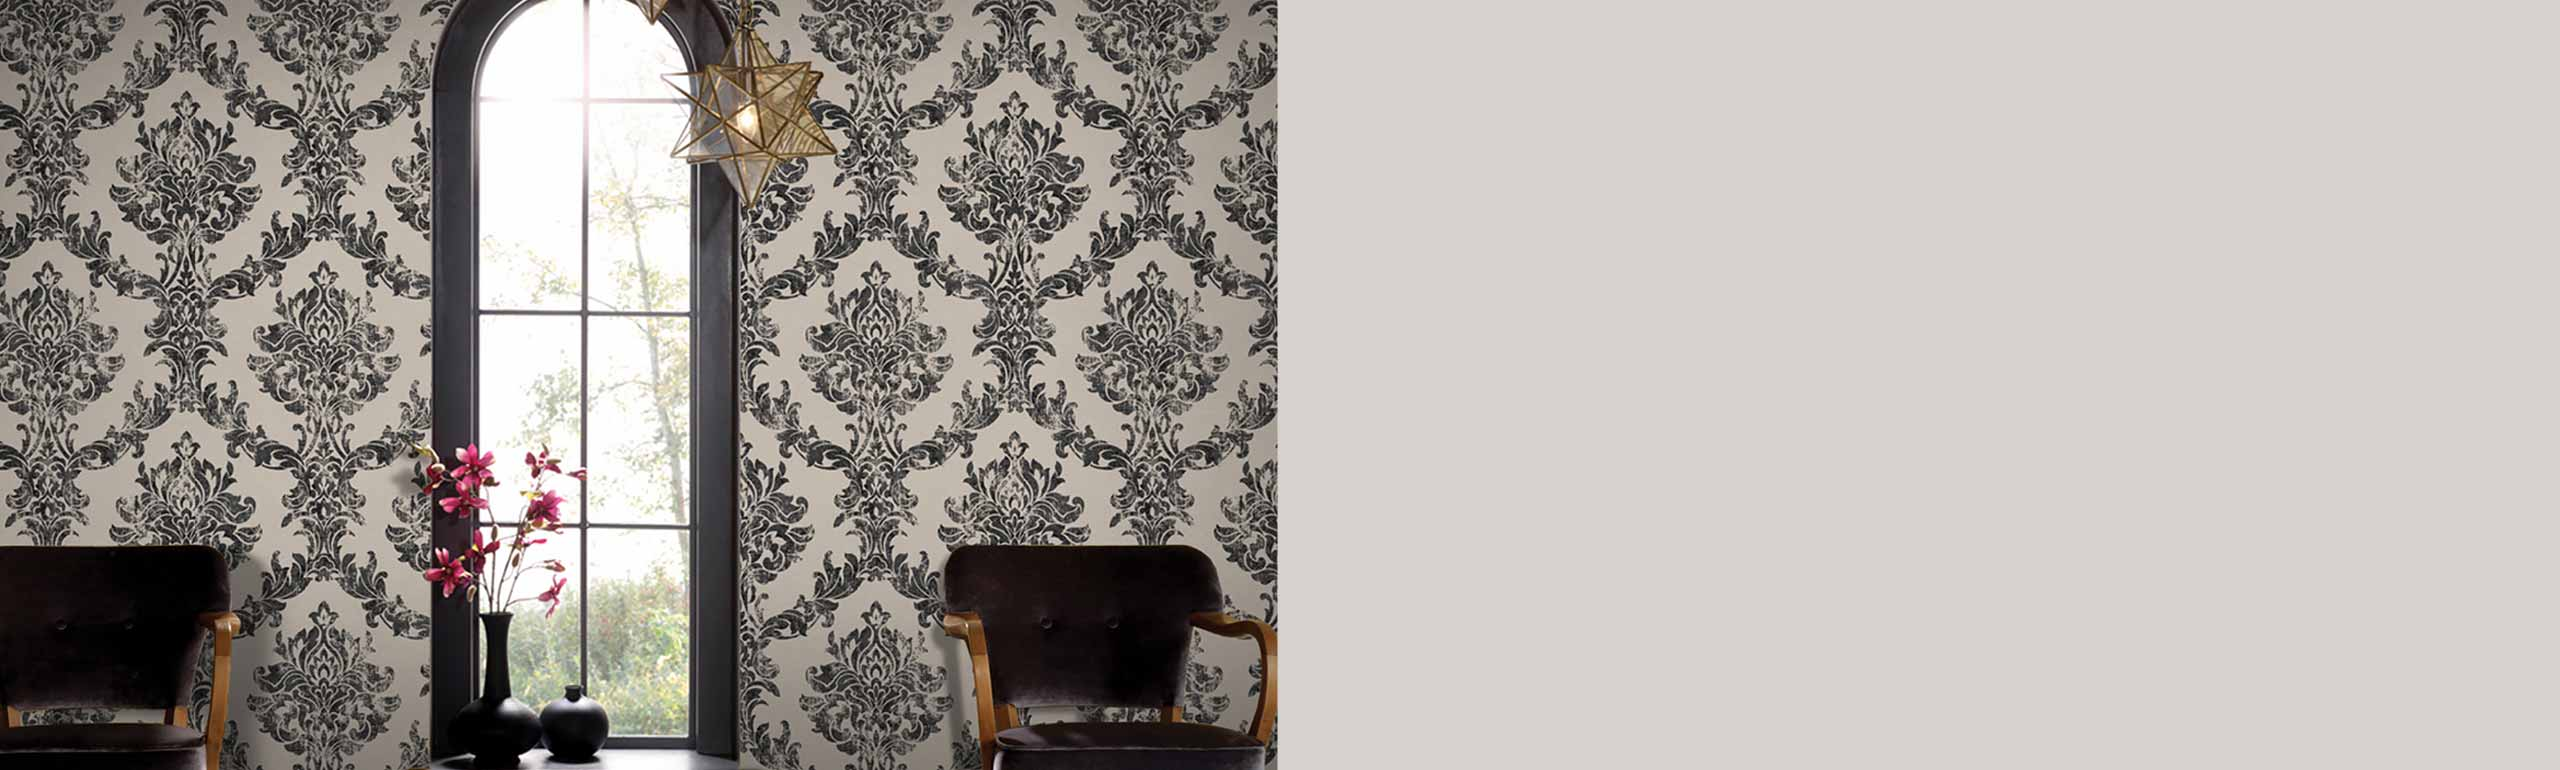 Home Wallpaper Pattern wallpaper for walls | wall coverings | home wallpaper